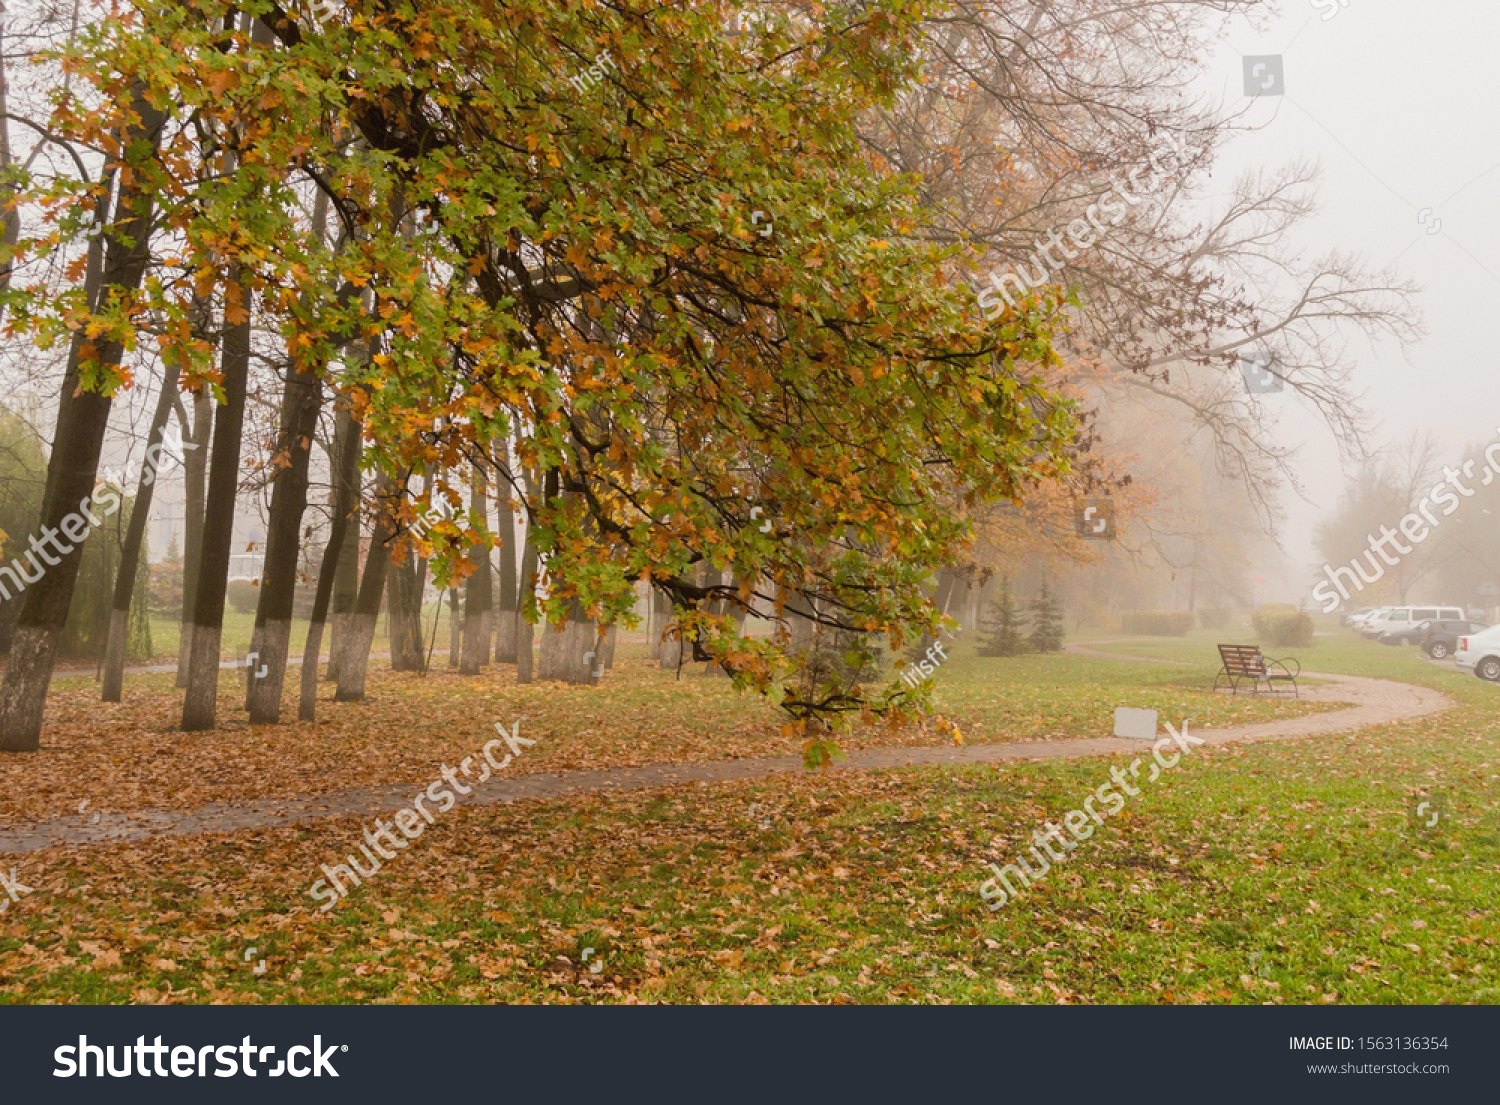 Urban Park landscape. Large autumn trees with yellow and green leaves leaned toward the winding path on a misty morning. Bench in the background